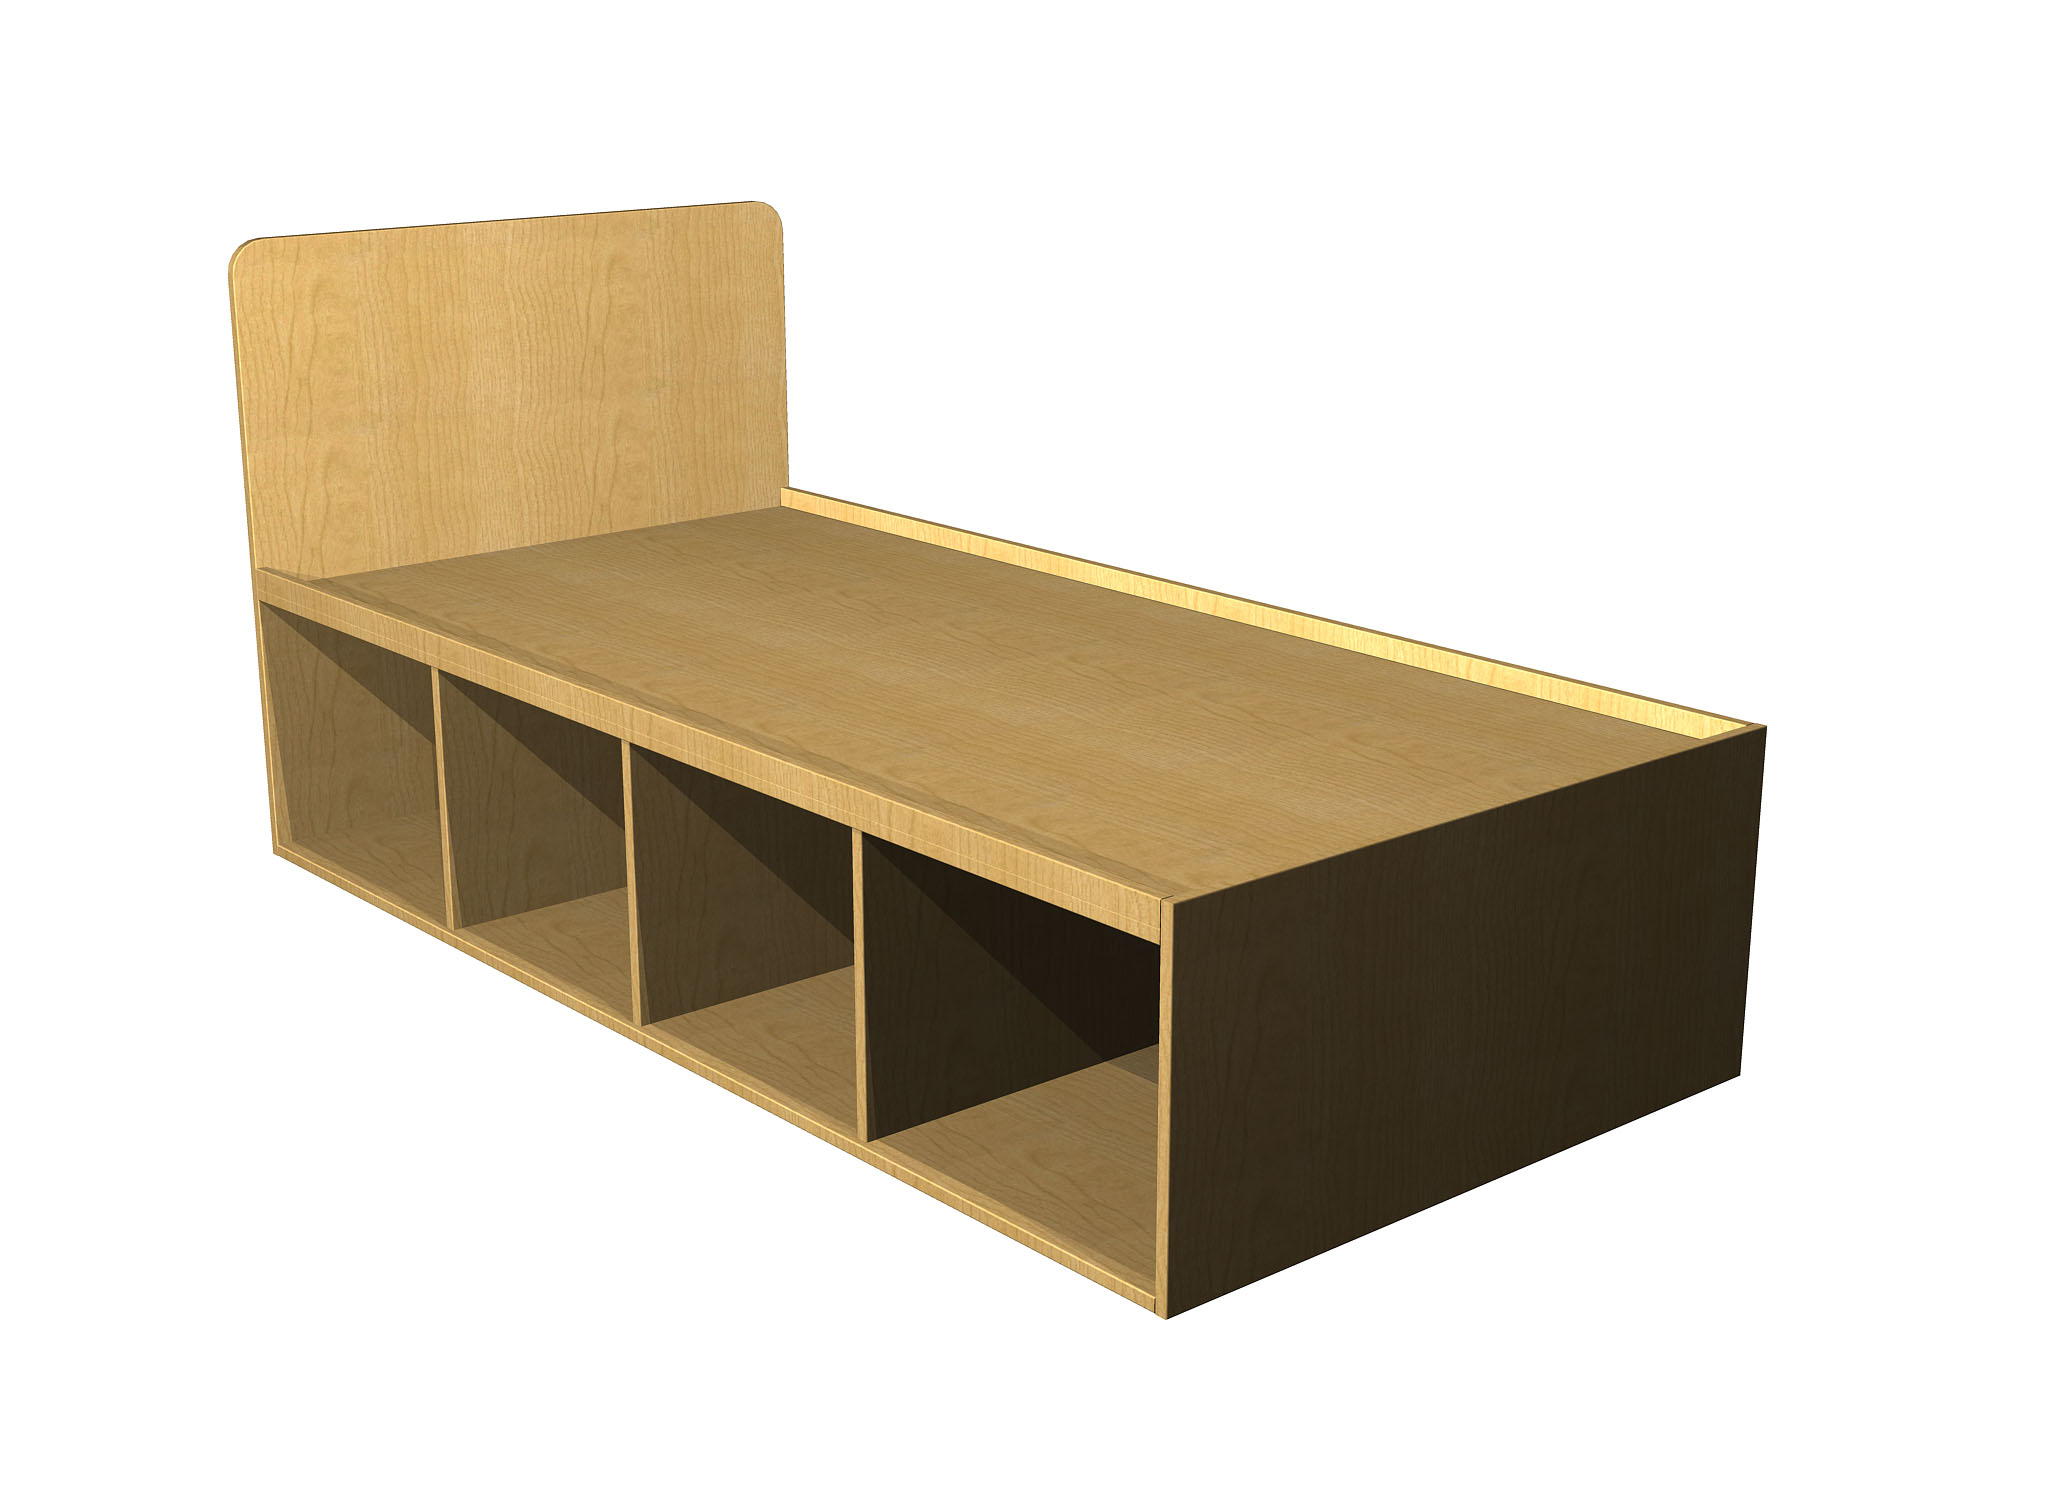 Student bed single with storage